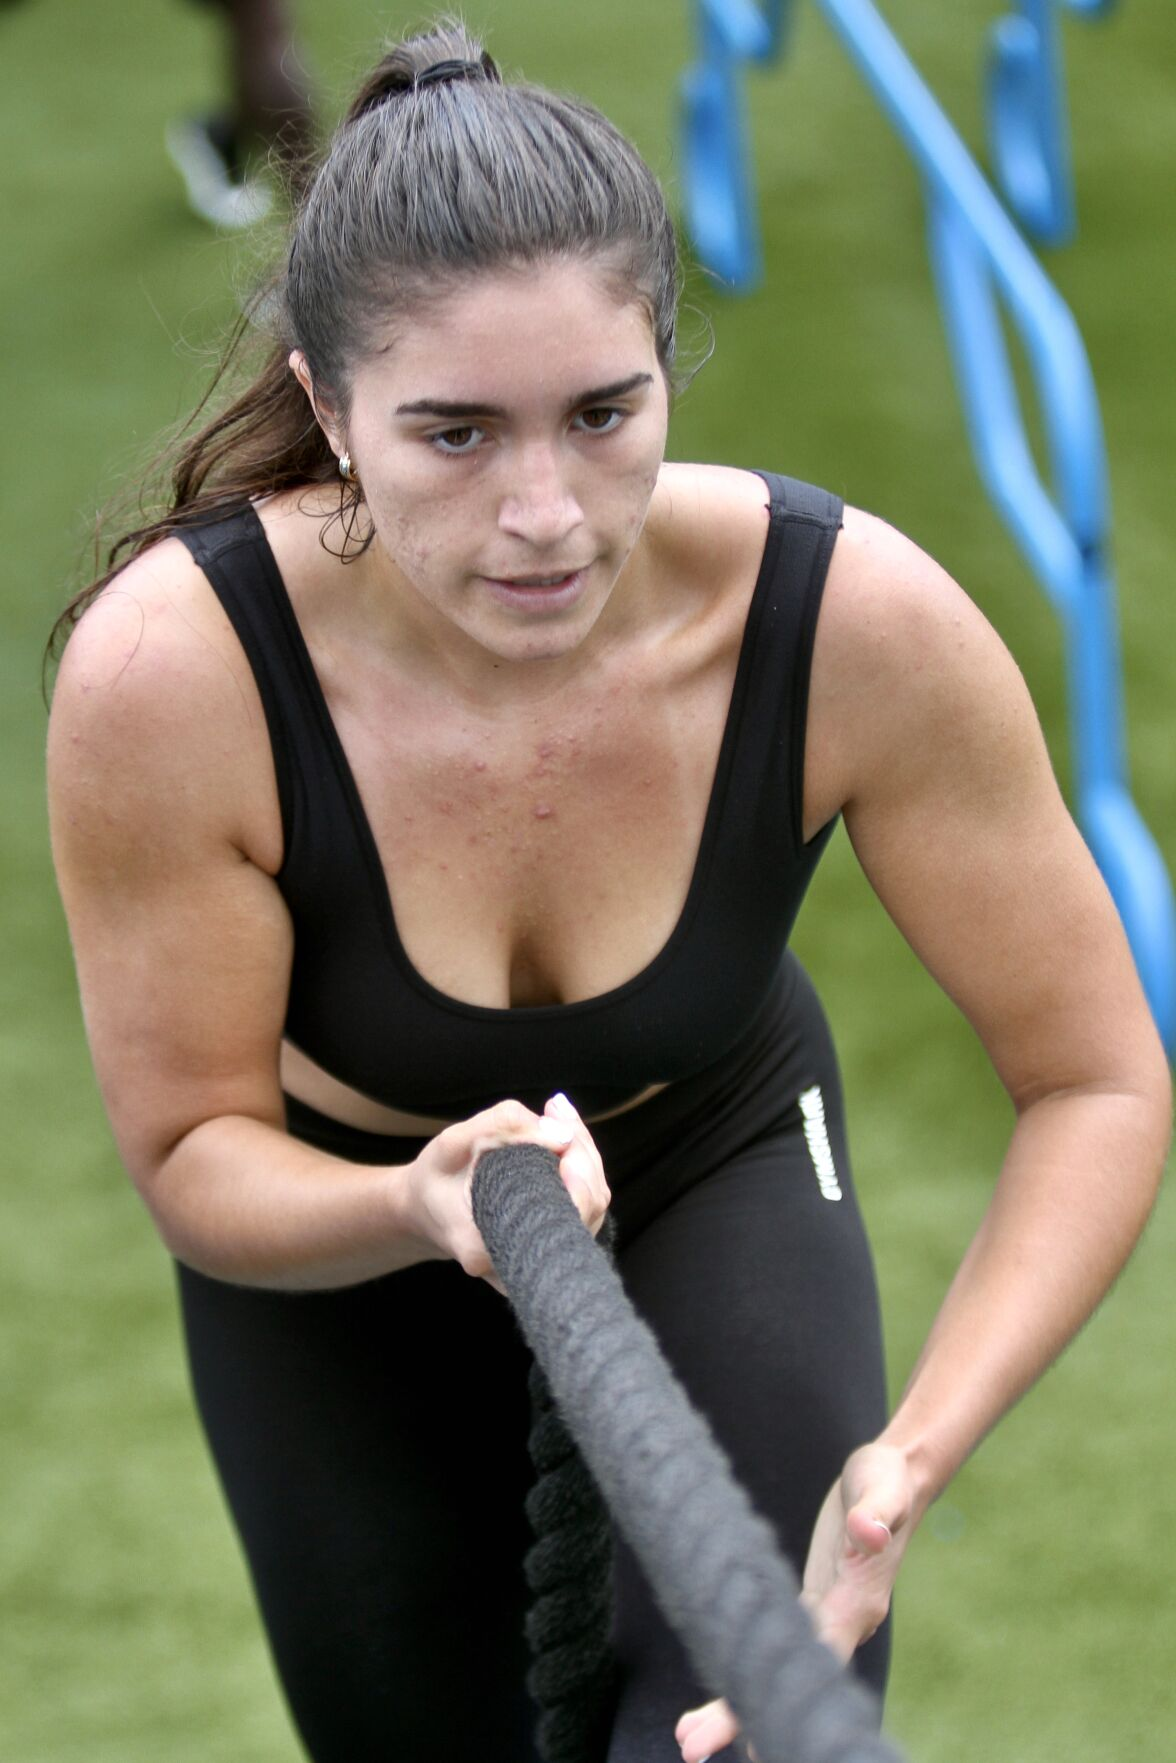 Paradise Coast Sports 1. A fitness competitor climbs the functional staircase ramp during the free Bootcamp at The Factory at the Paradise Cove Tailgate Party Saturday..jpeg